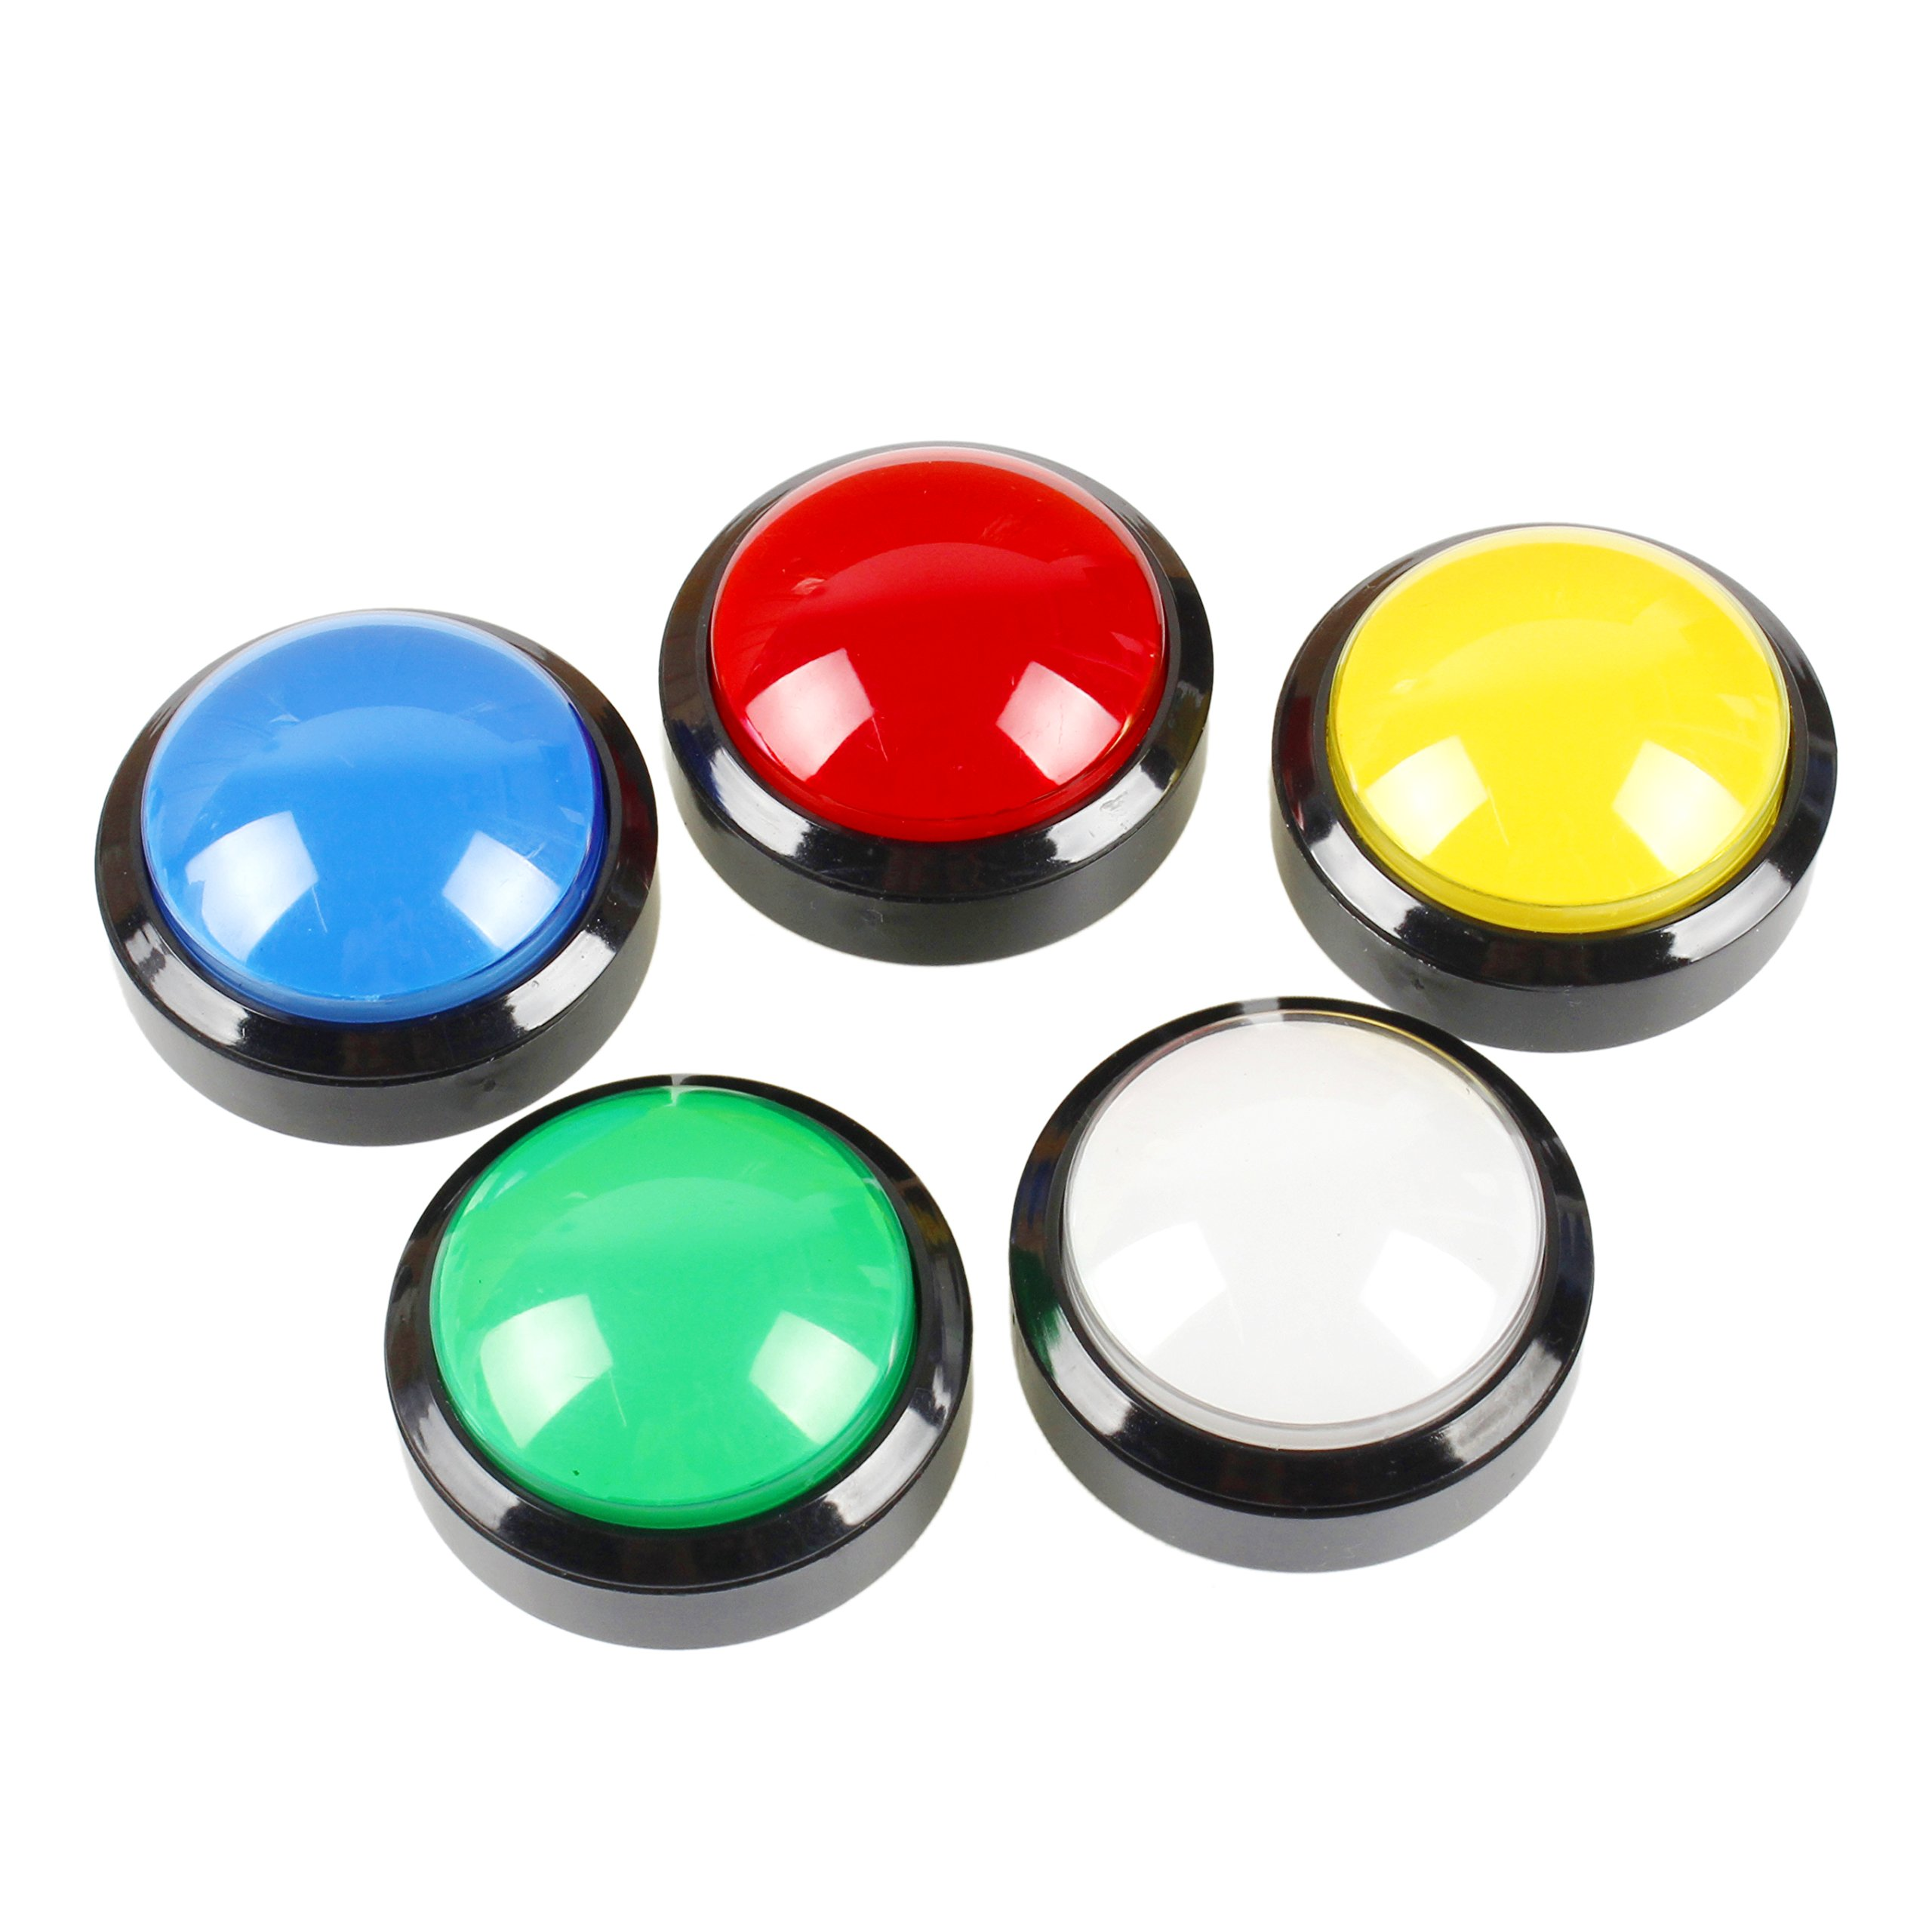 EG STARTS 5X New 60mm Dome Shaped LED Illuminated Push Buttons for Arcade Coin Machine Operated Games